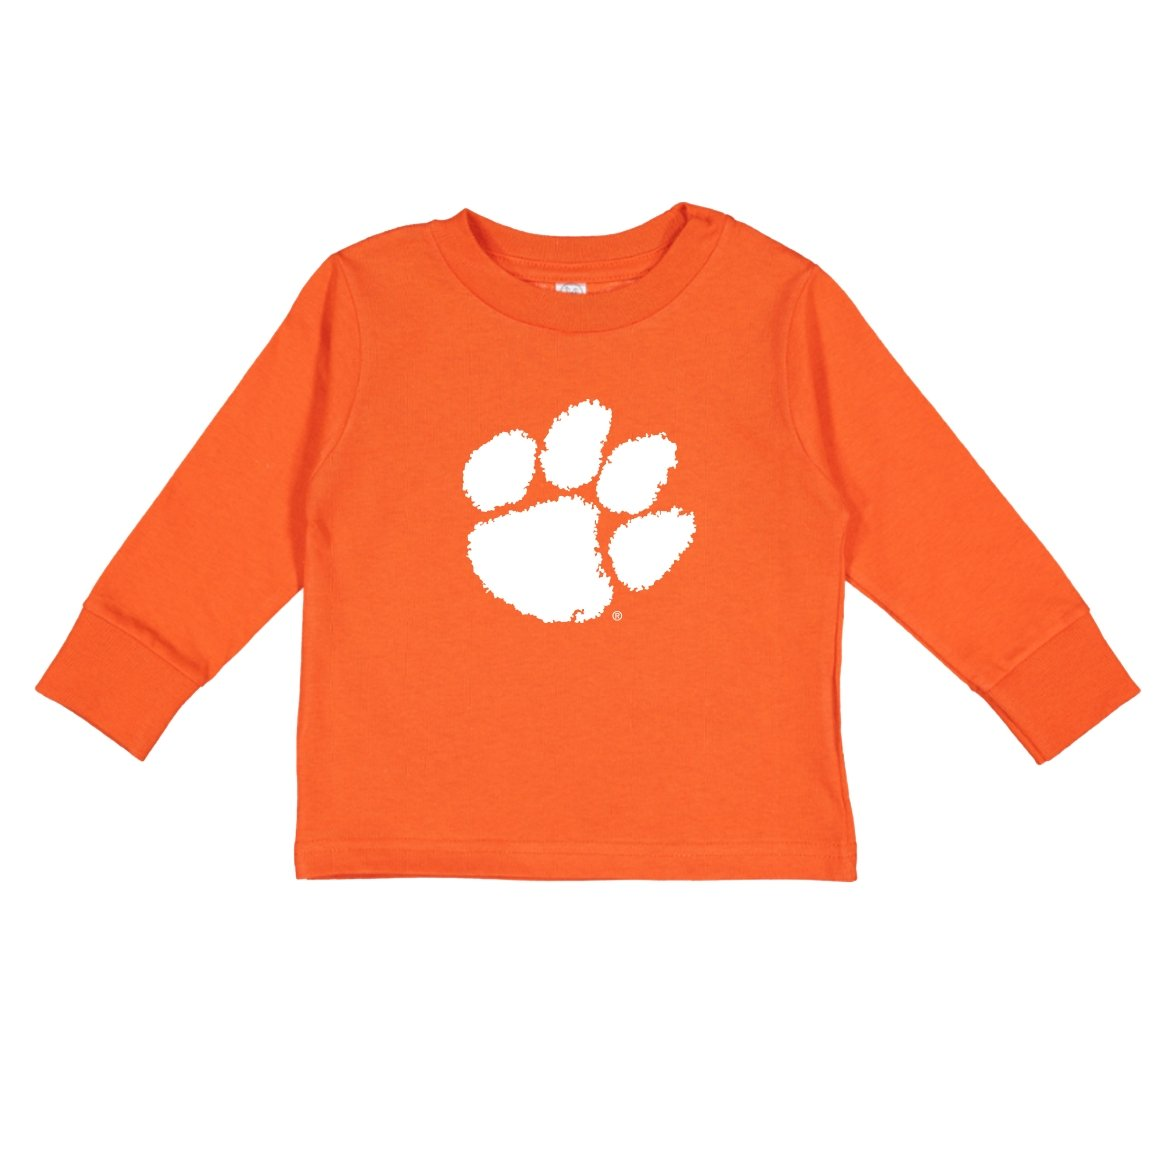 Toddler Long Sleeve Tee With White Paw - Mr. Knickerbocker